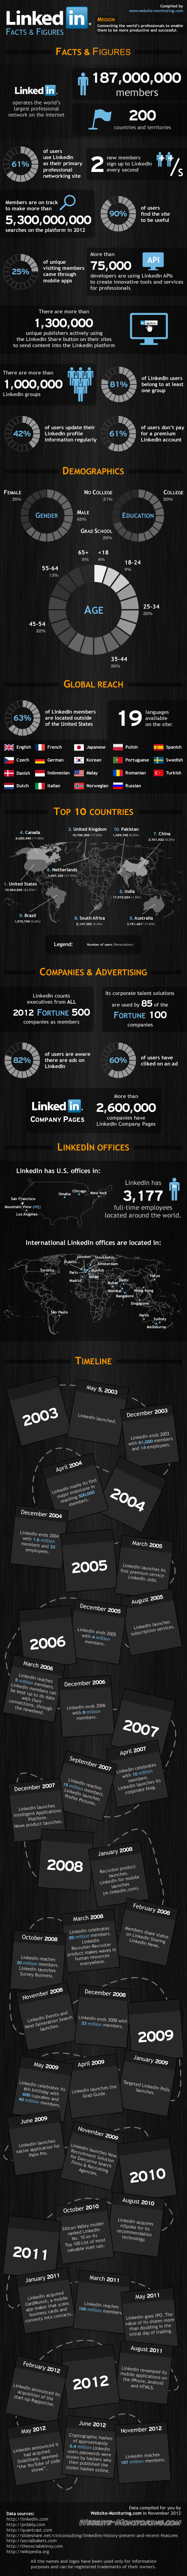 linkedin-facts--figures_50c73d7a2c69d